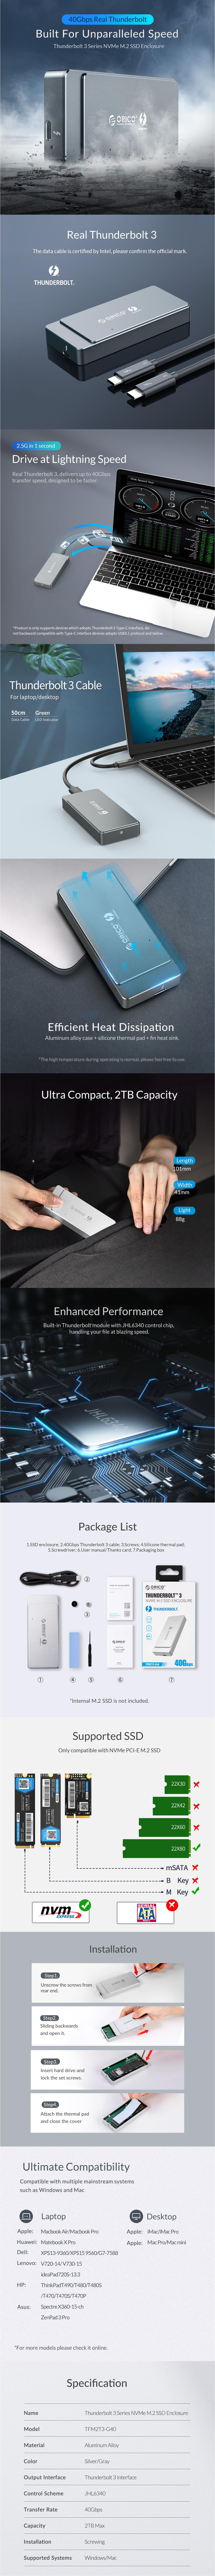 A large marketing image providing additional information about the product ORICO Thunderbolt 3 NVME M.2 SSD Enclosure - Additional alt info not provided